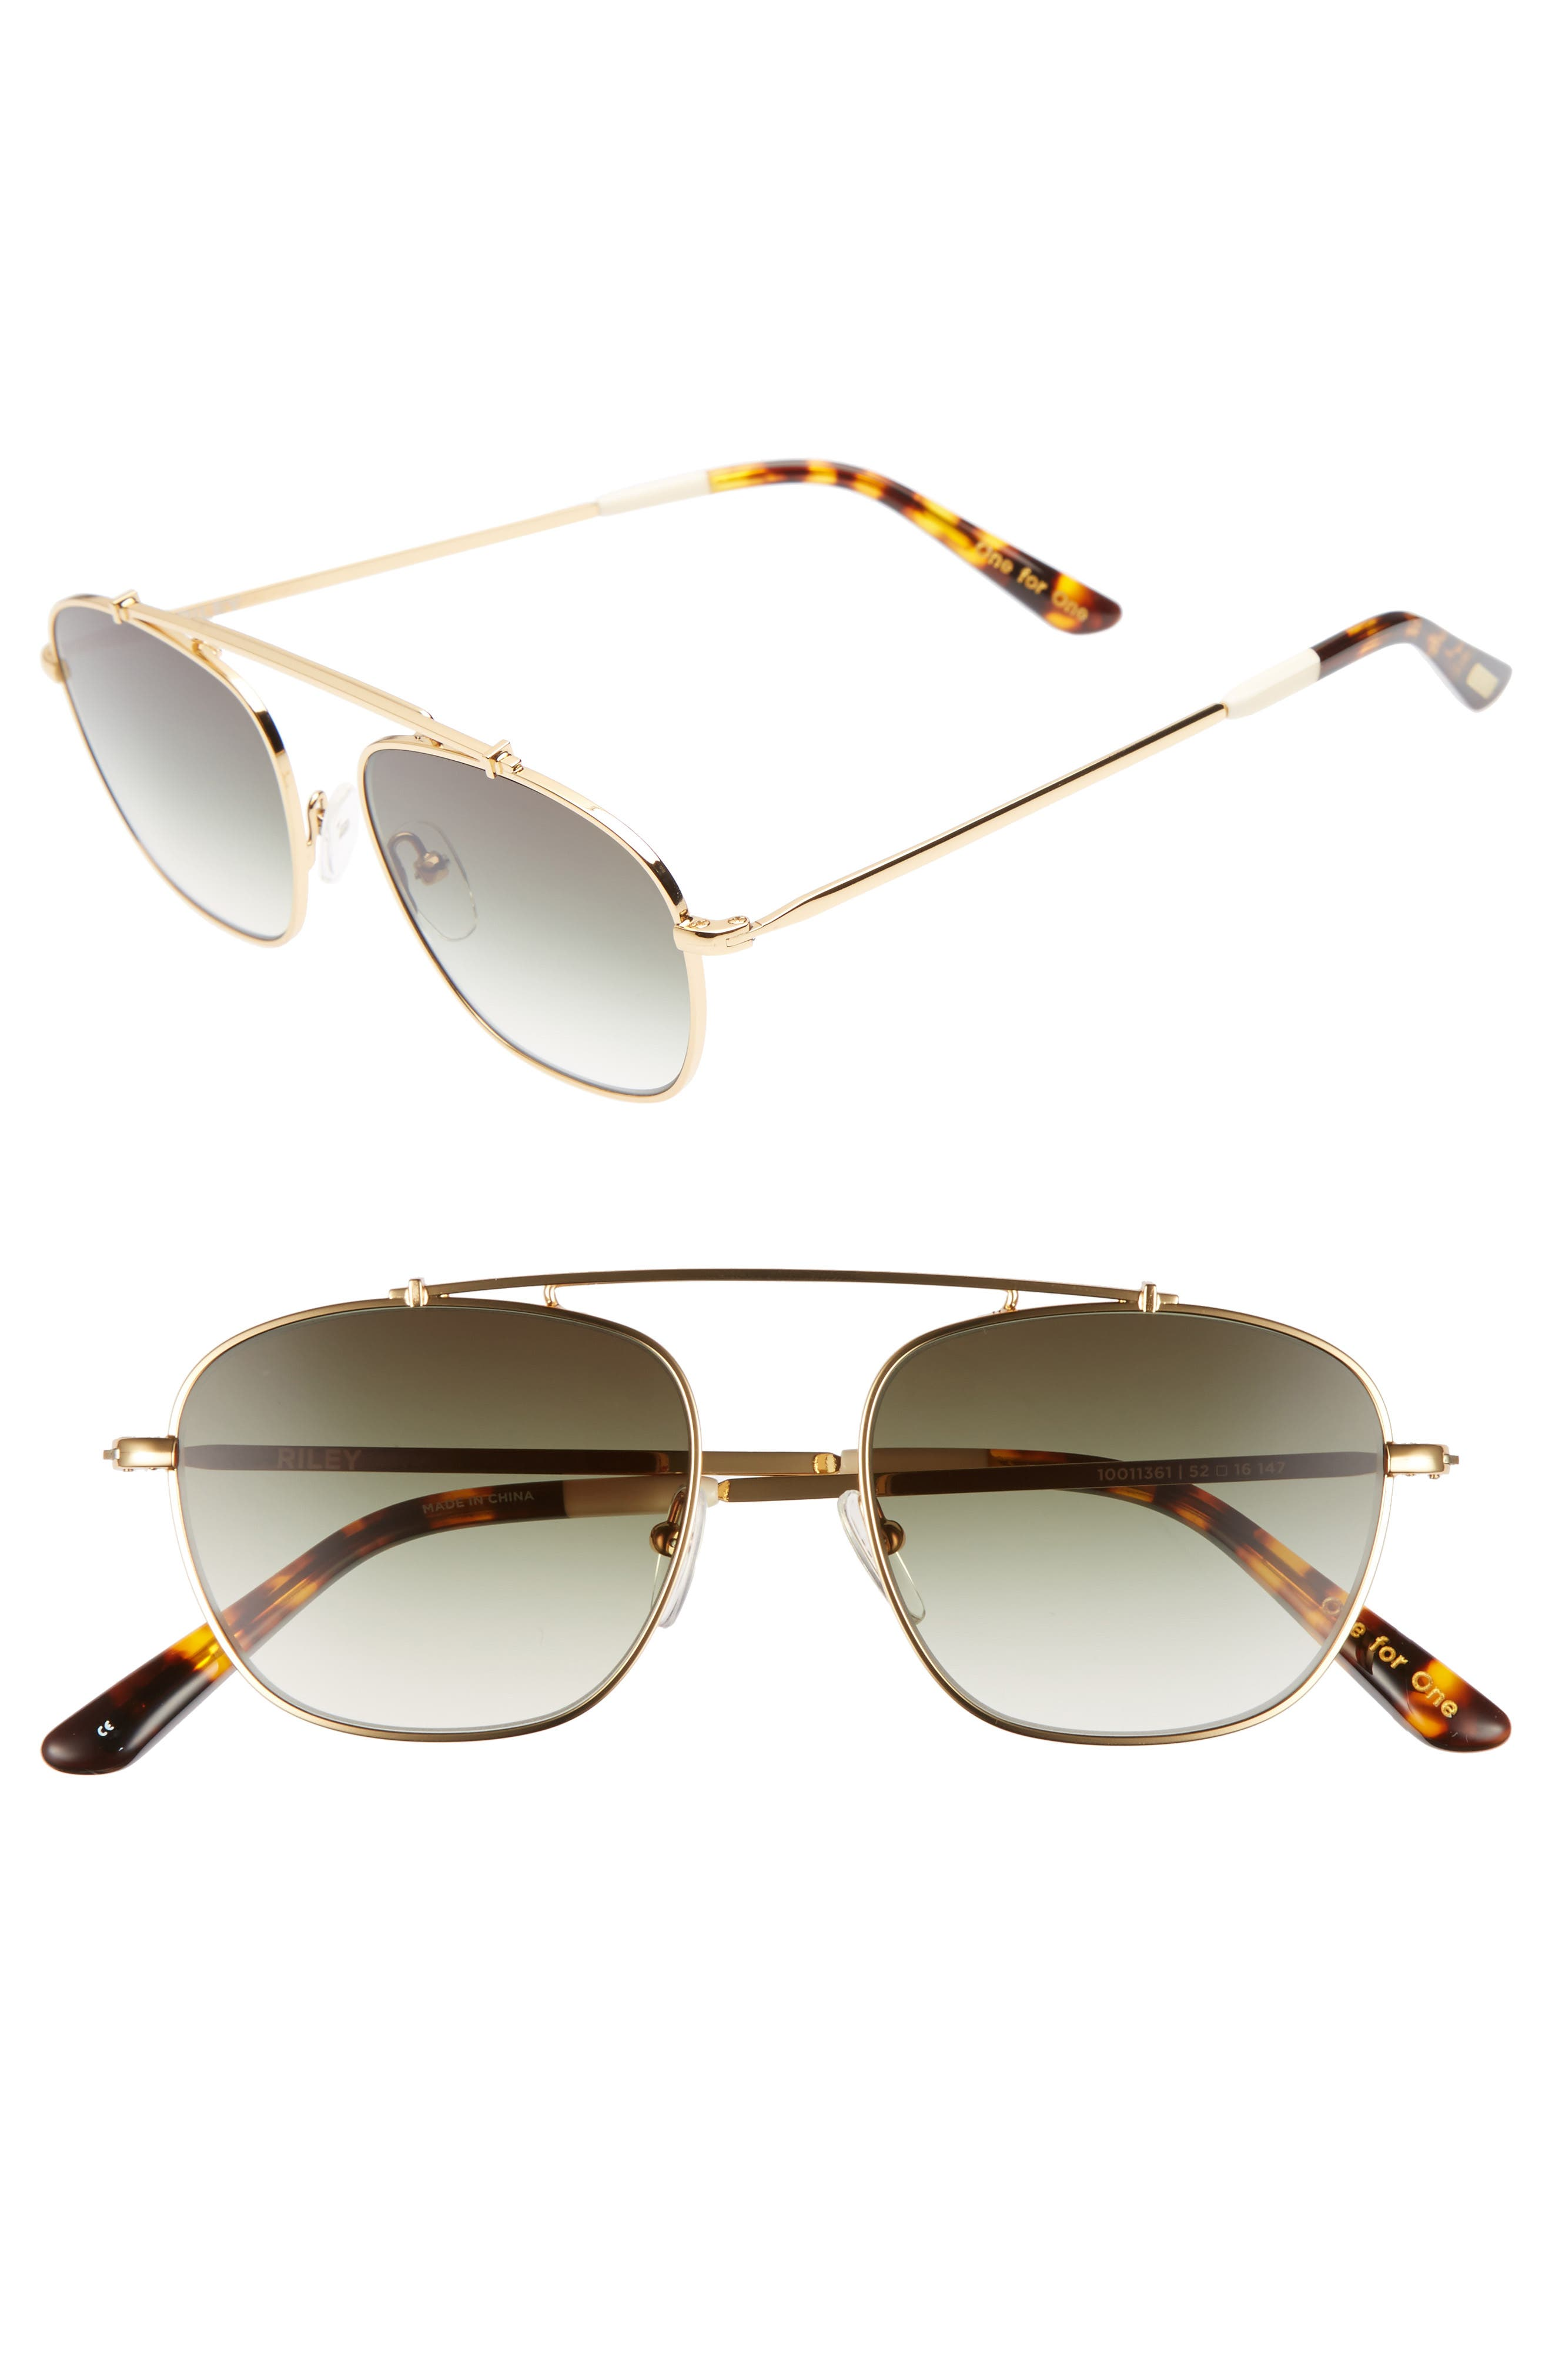 Riley 52mm Sunglasses,                             Main thumbnail 1, color,                             SHINY GOLD